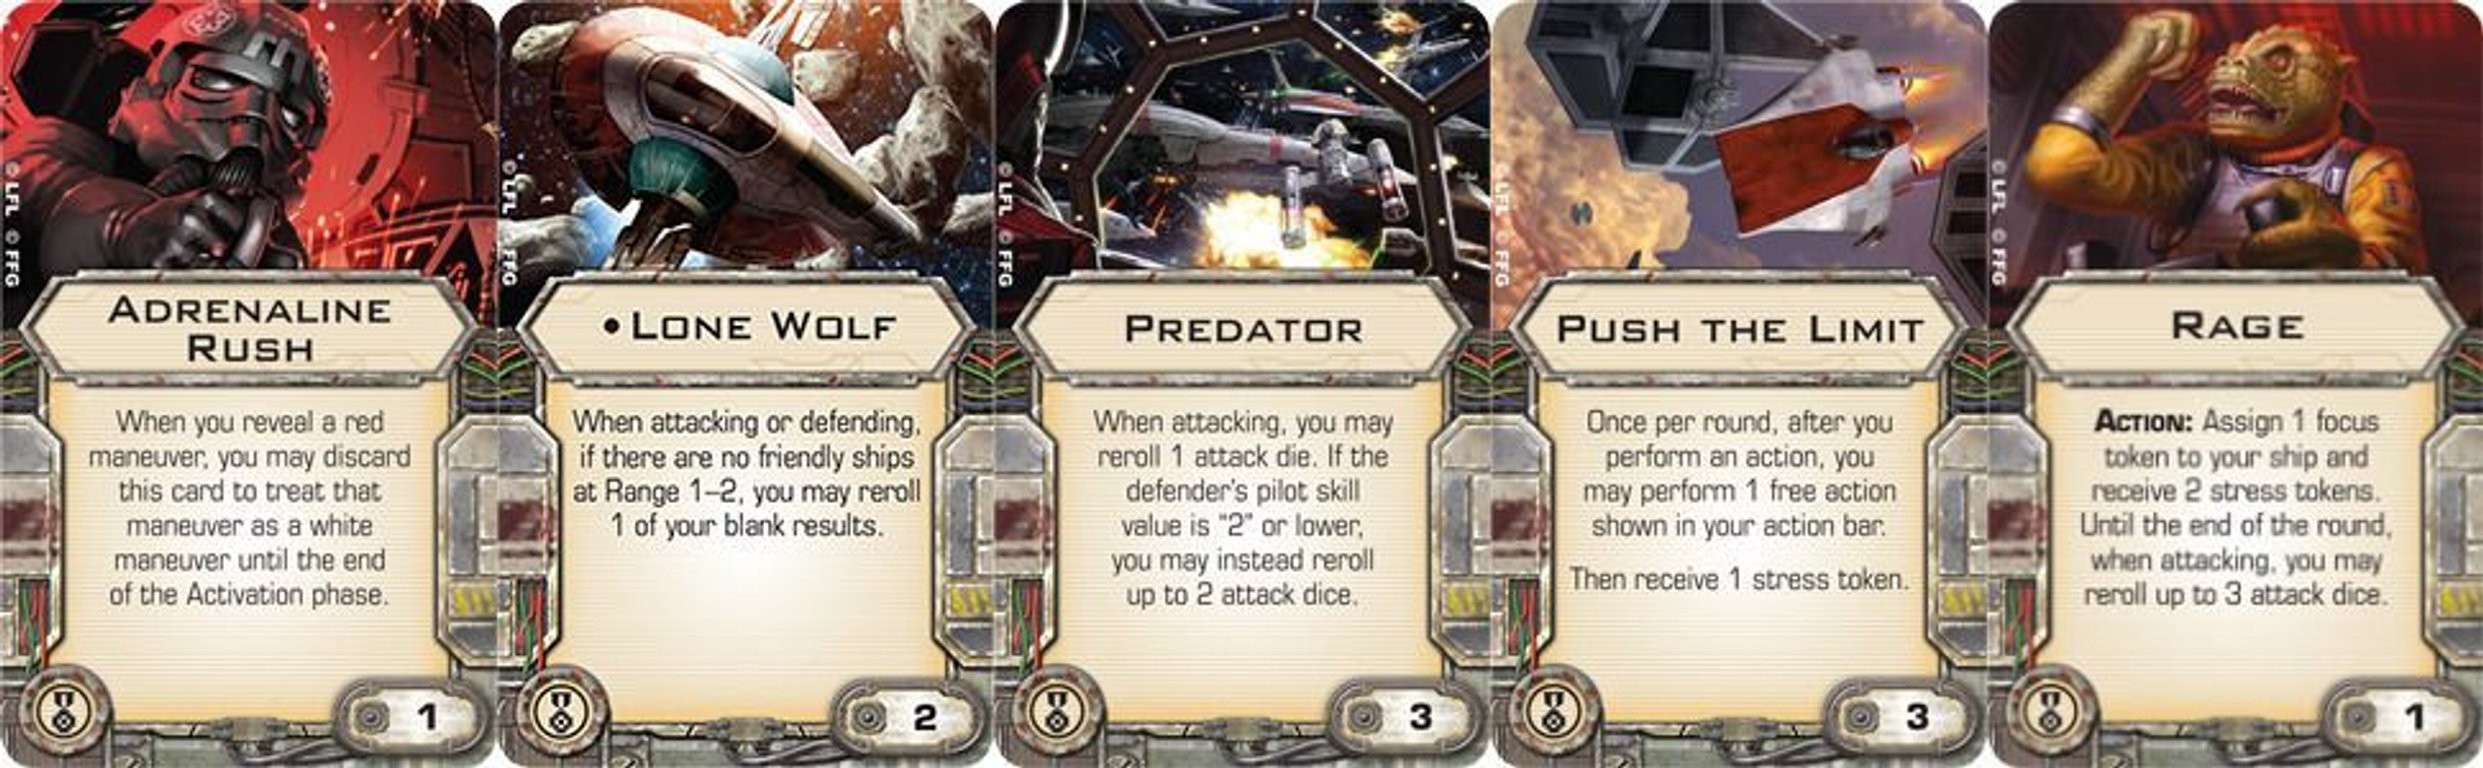 Star Wars: X-Wing Miniatures Game - Punishing One cards